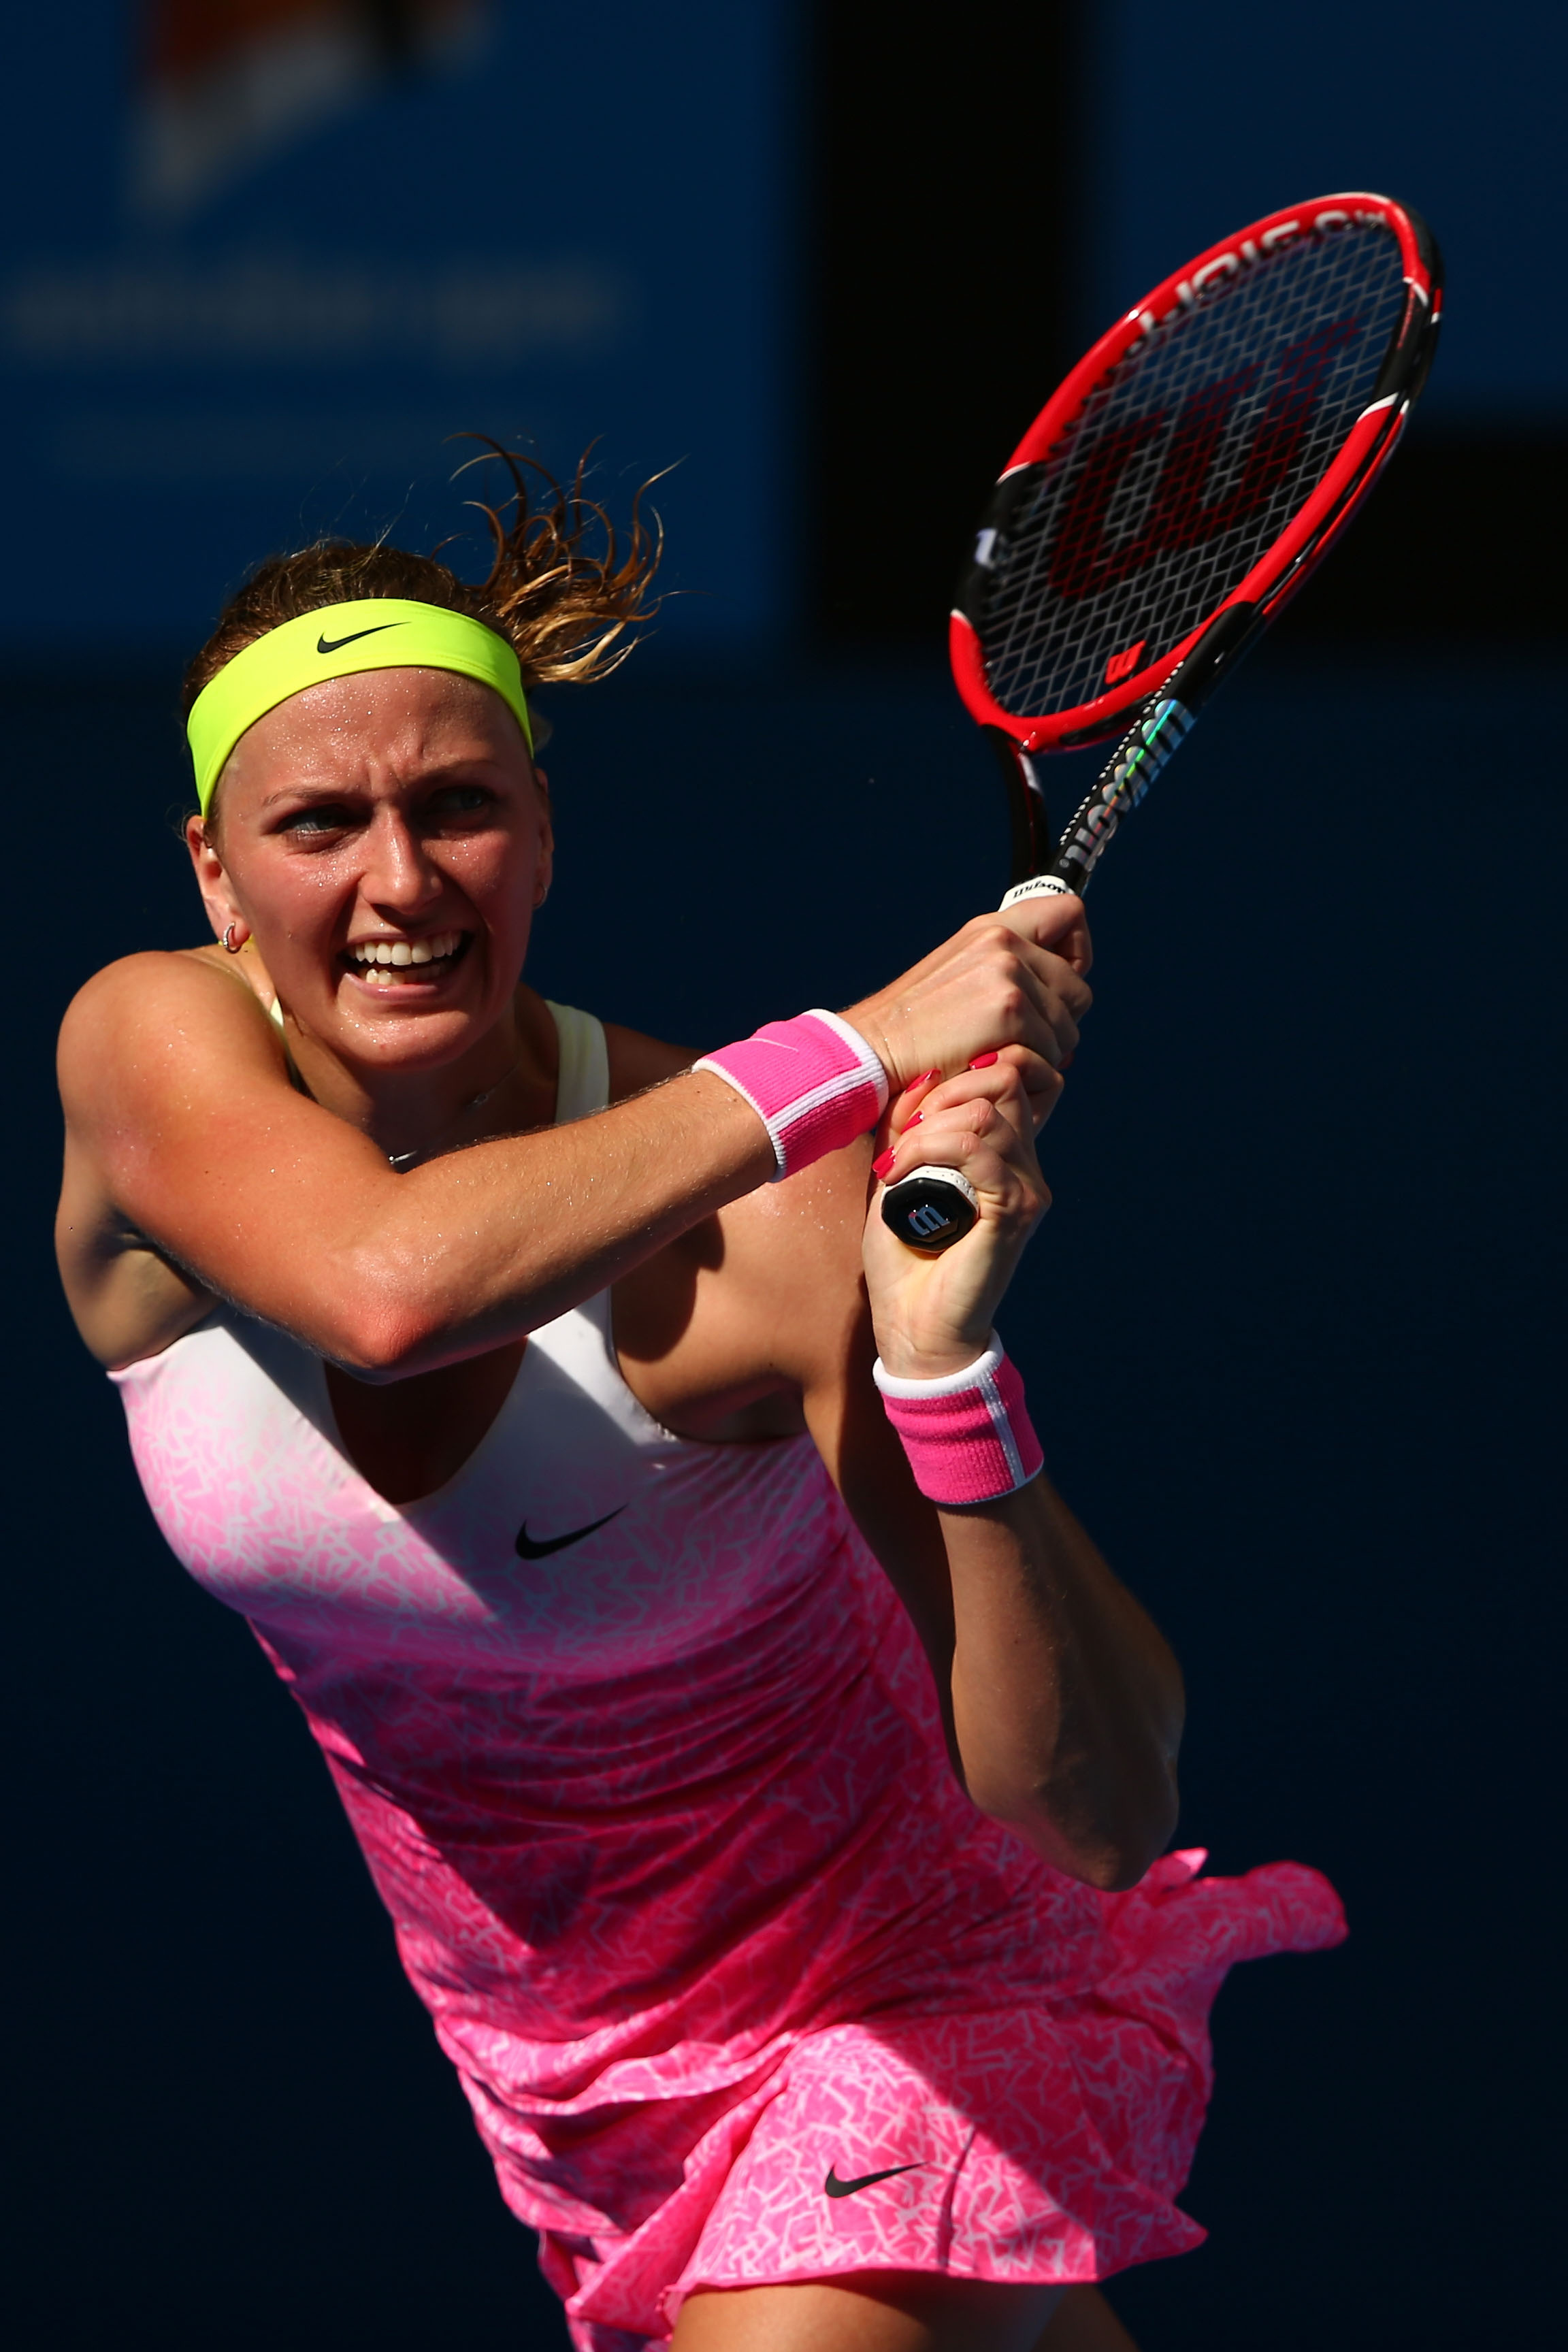 Looking as fit as ever, Kvitova has been wearing this pink Nike kit well.